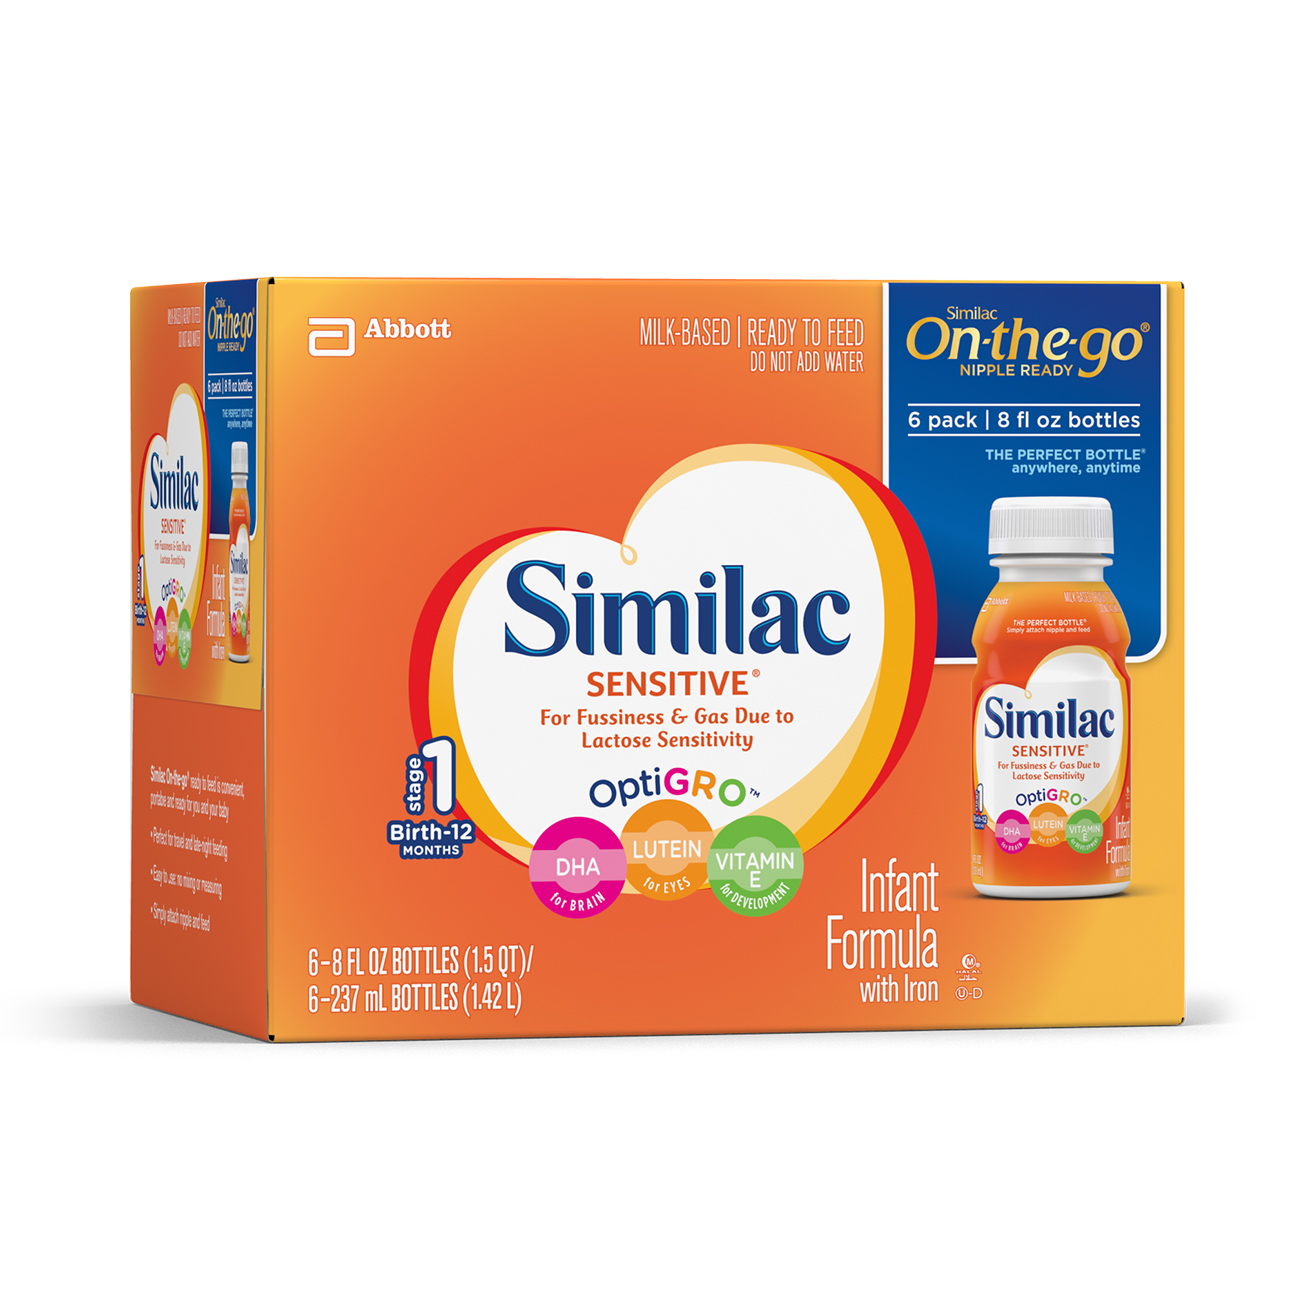 Similac Sensitive Infant Formula Ready-to-Feed (24 Count) 8 fl oz